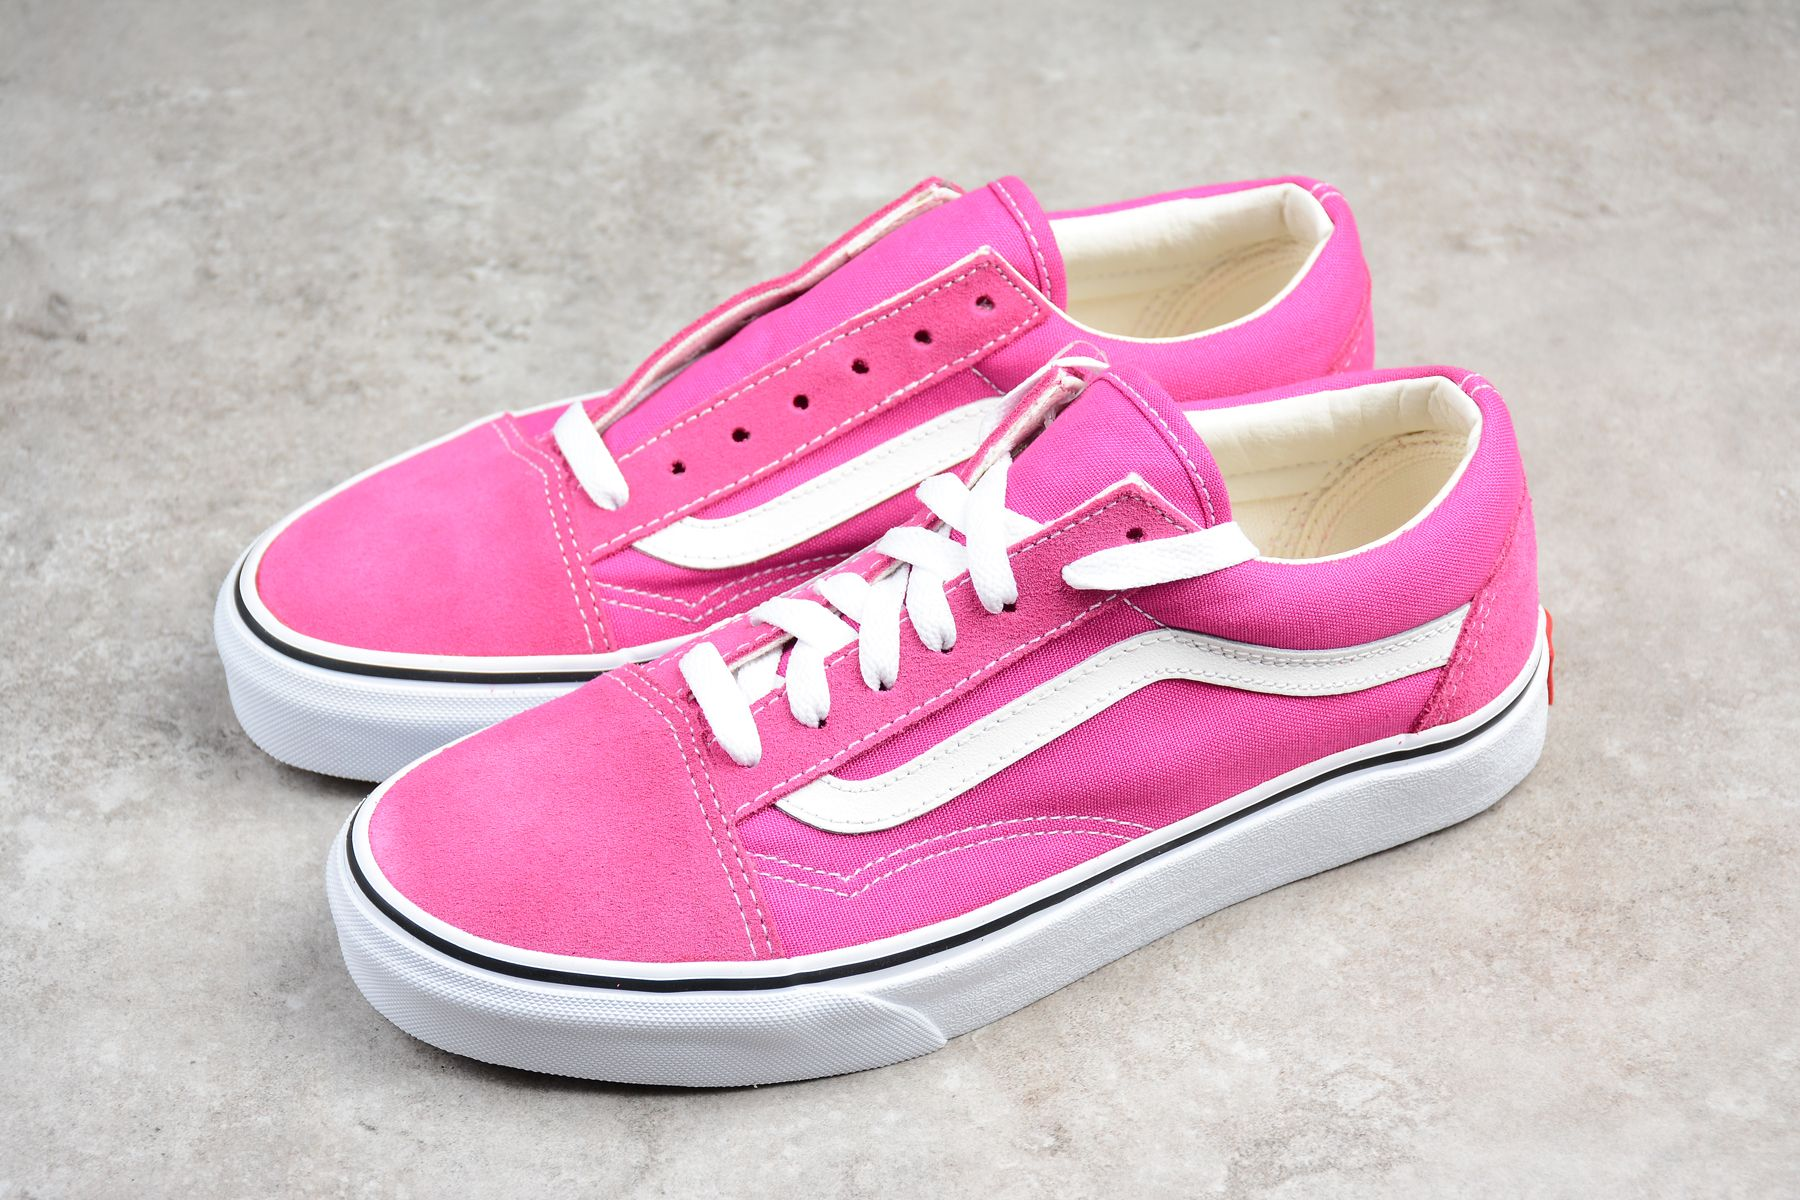 VANS Old Skool 'Very Berry' VN0A38G1OVY | Vans Shoes